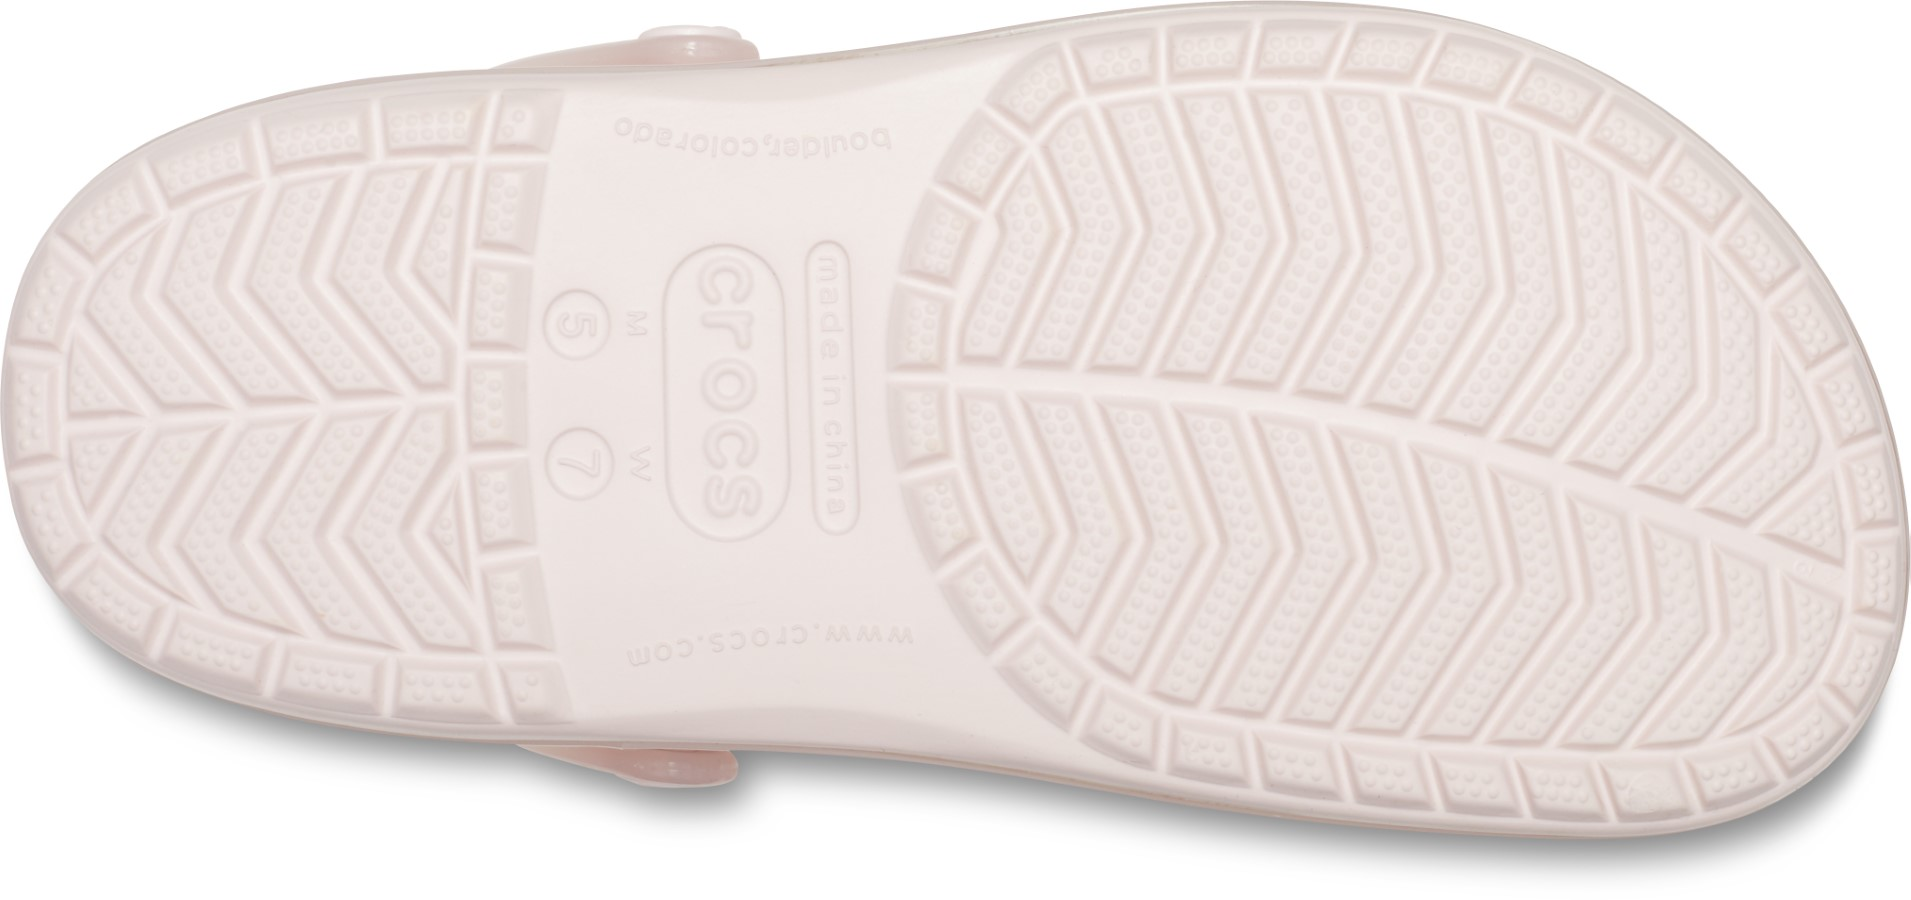 Crocs růžové pantofle Crocband Ice Pop Clog Barely Pink